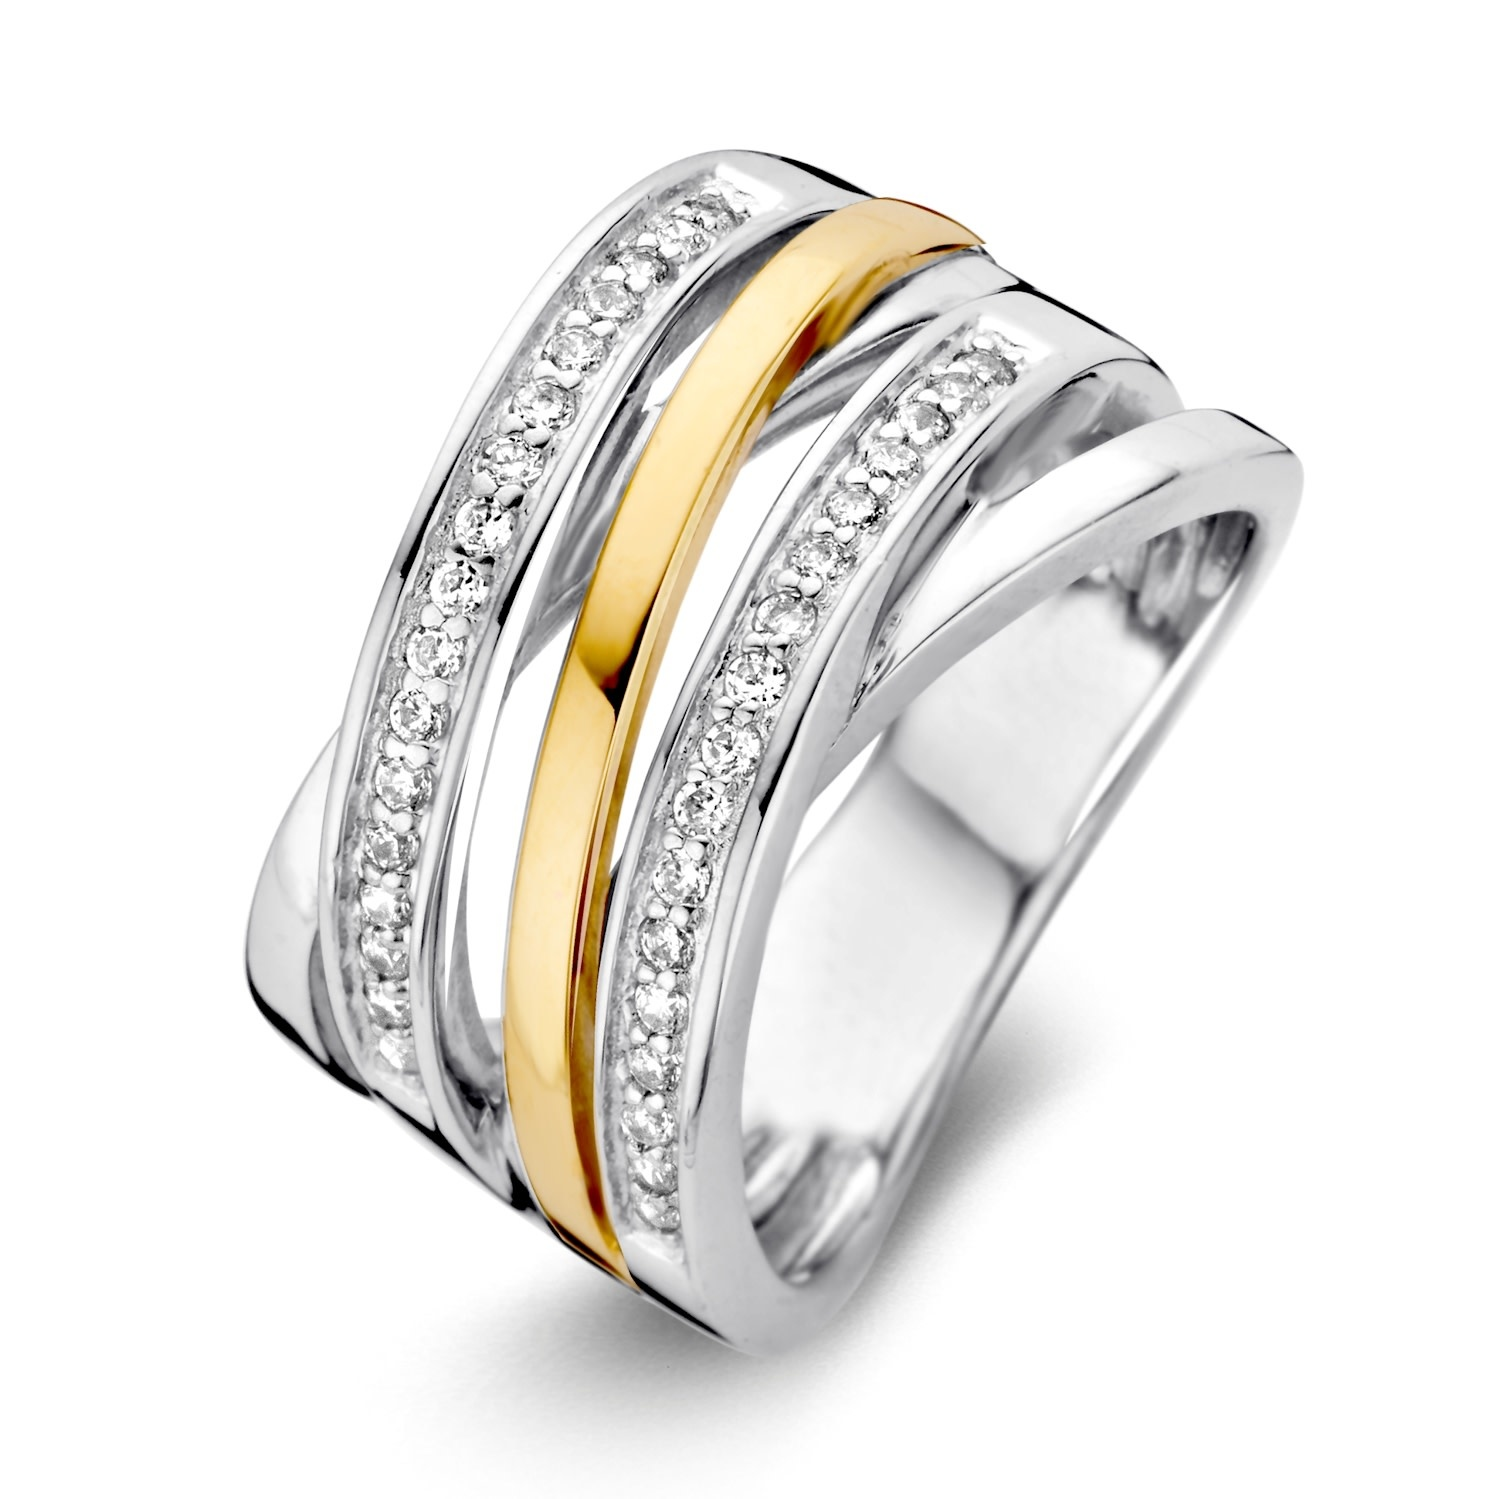 Ring Silver / Gold zirconia RF625214-2